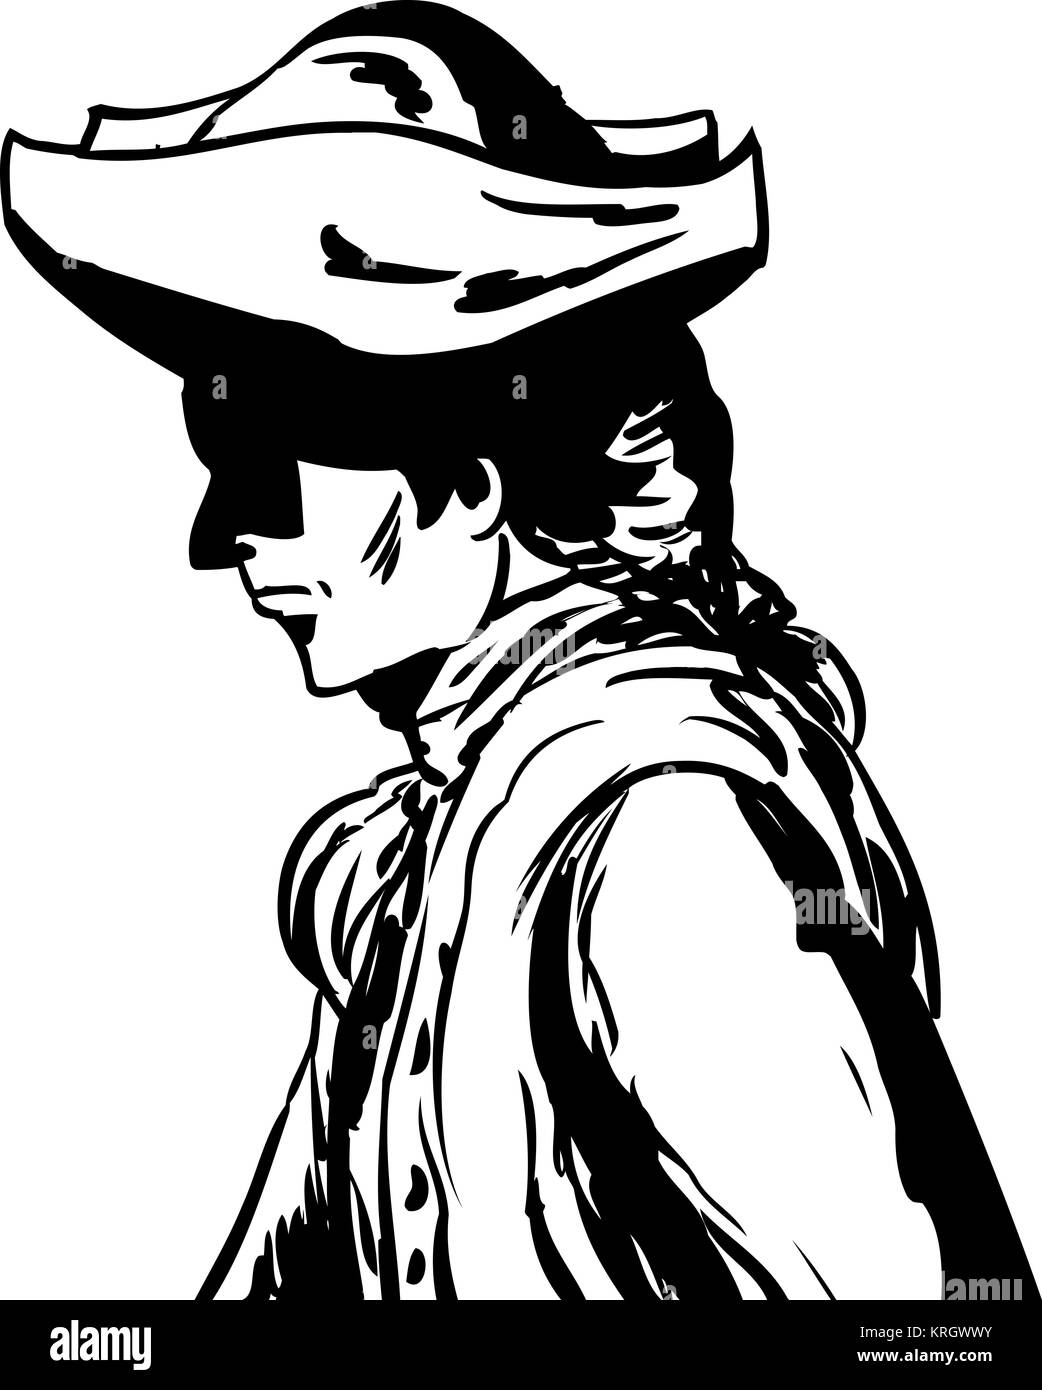 Outlined man in tricorn hat over white - Stock Image